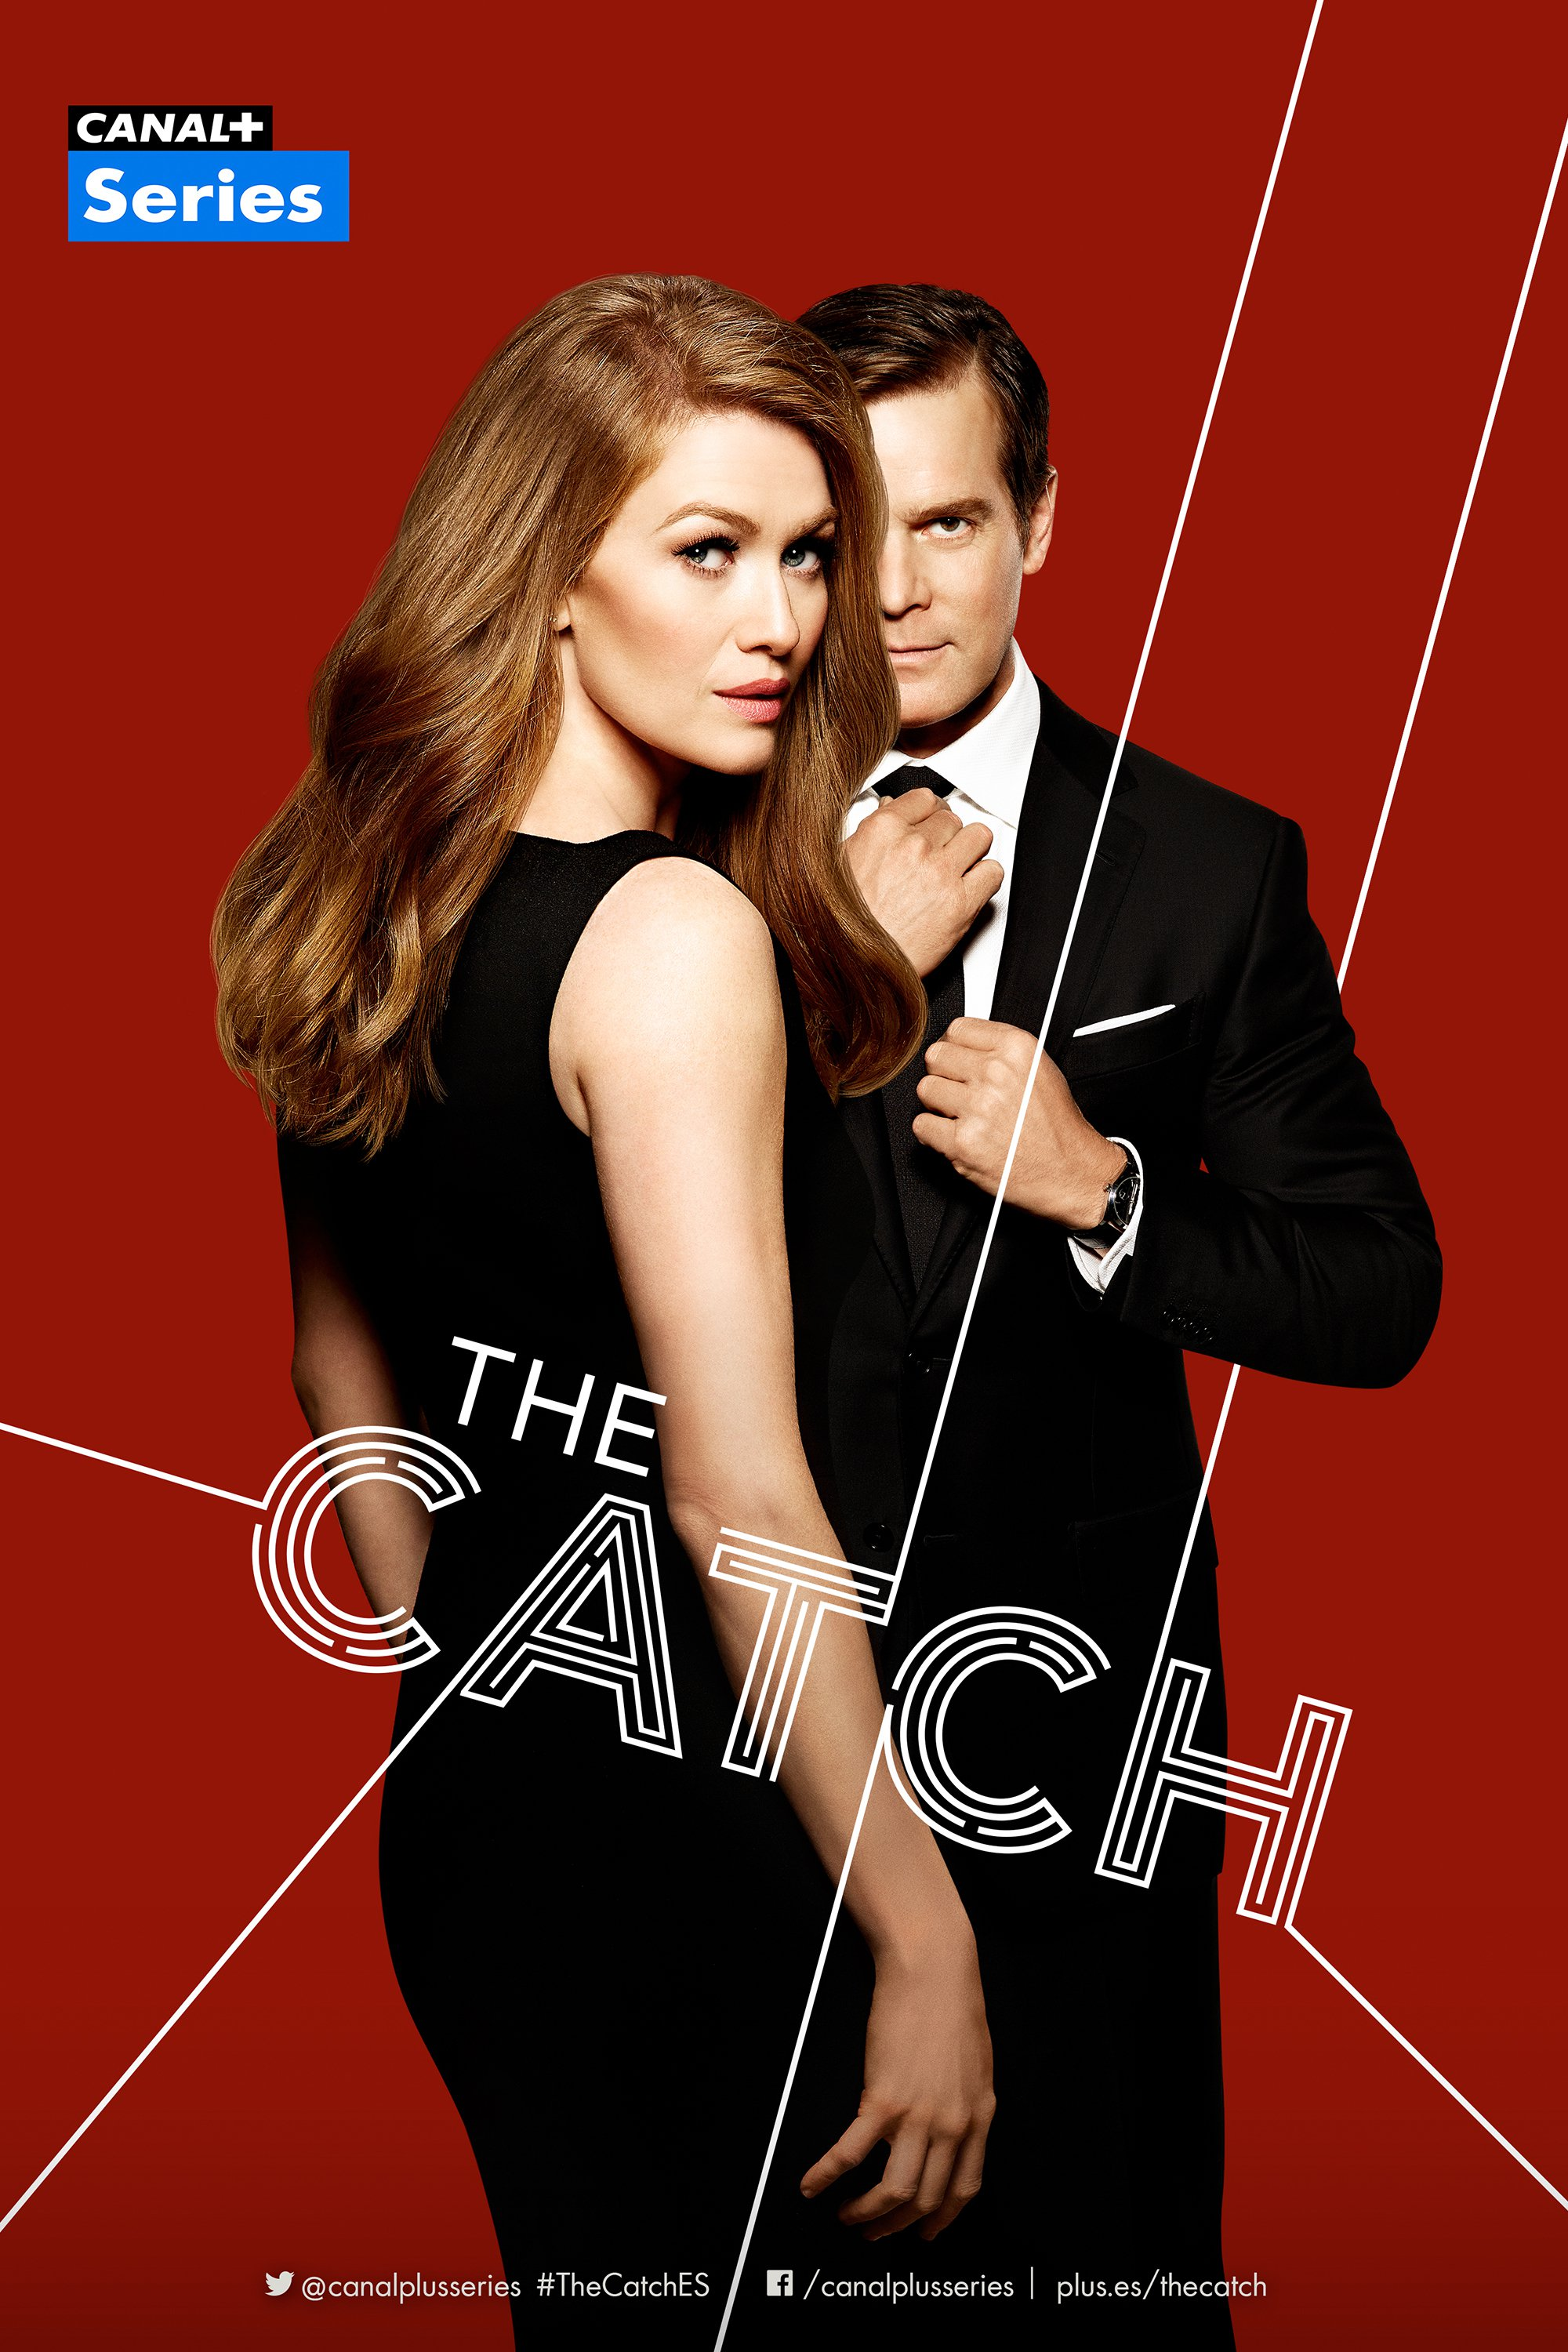 The Catch' />